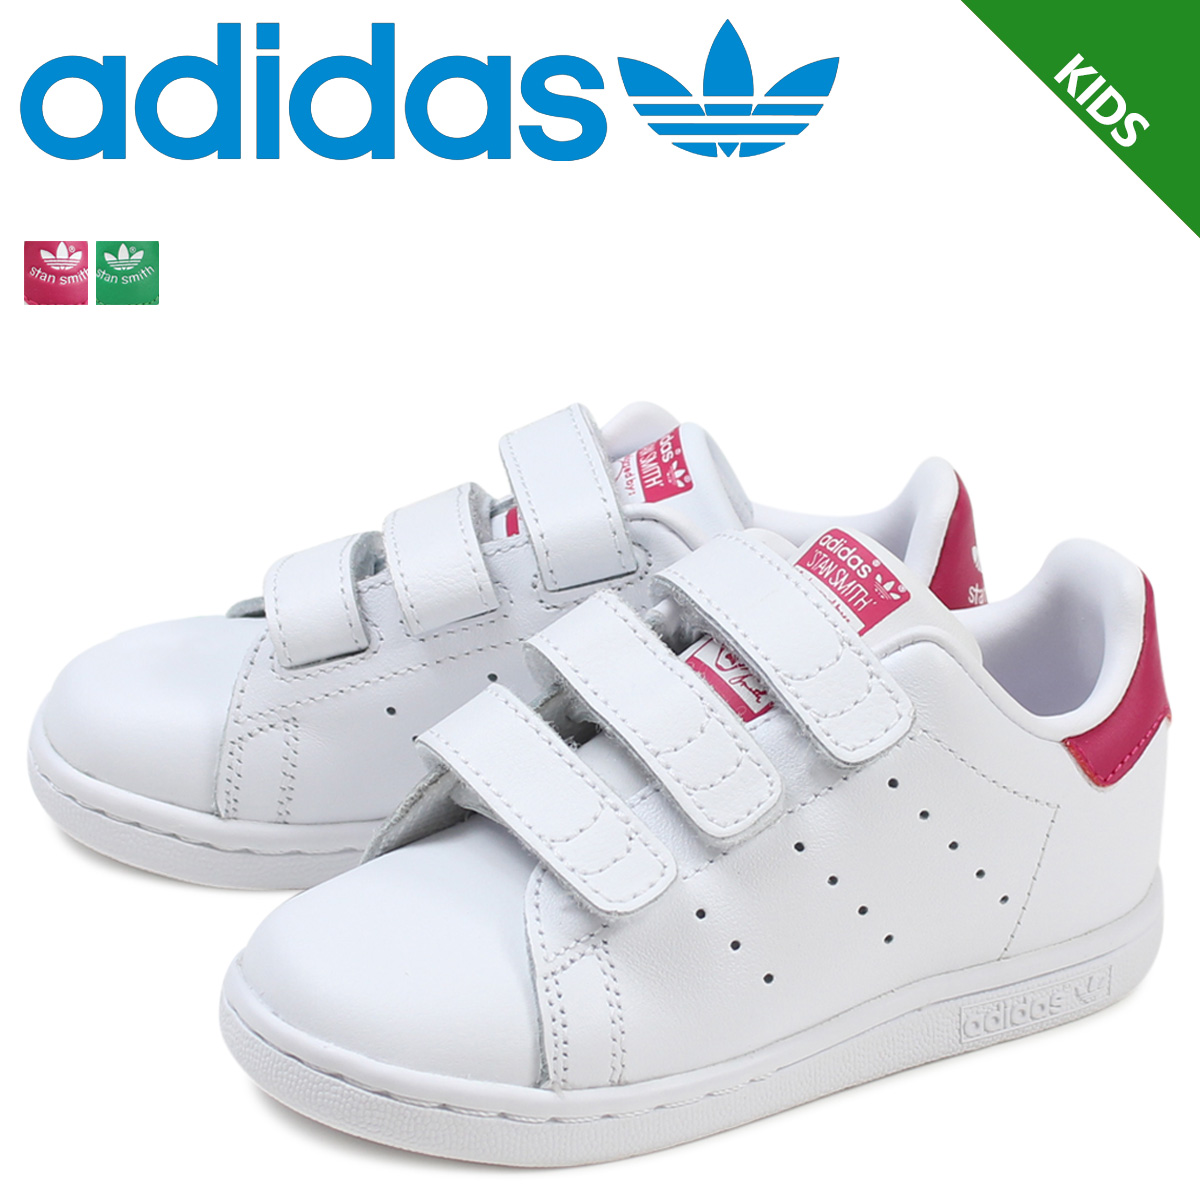 adidas Originals adidas originals Stan Smith sneakers baby kids STAN SMITH  CF I B32704 shoes white